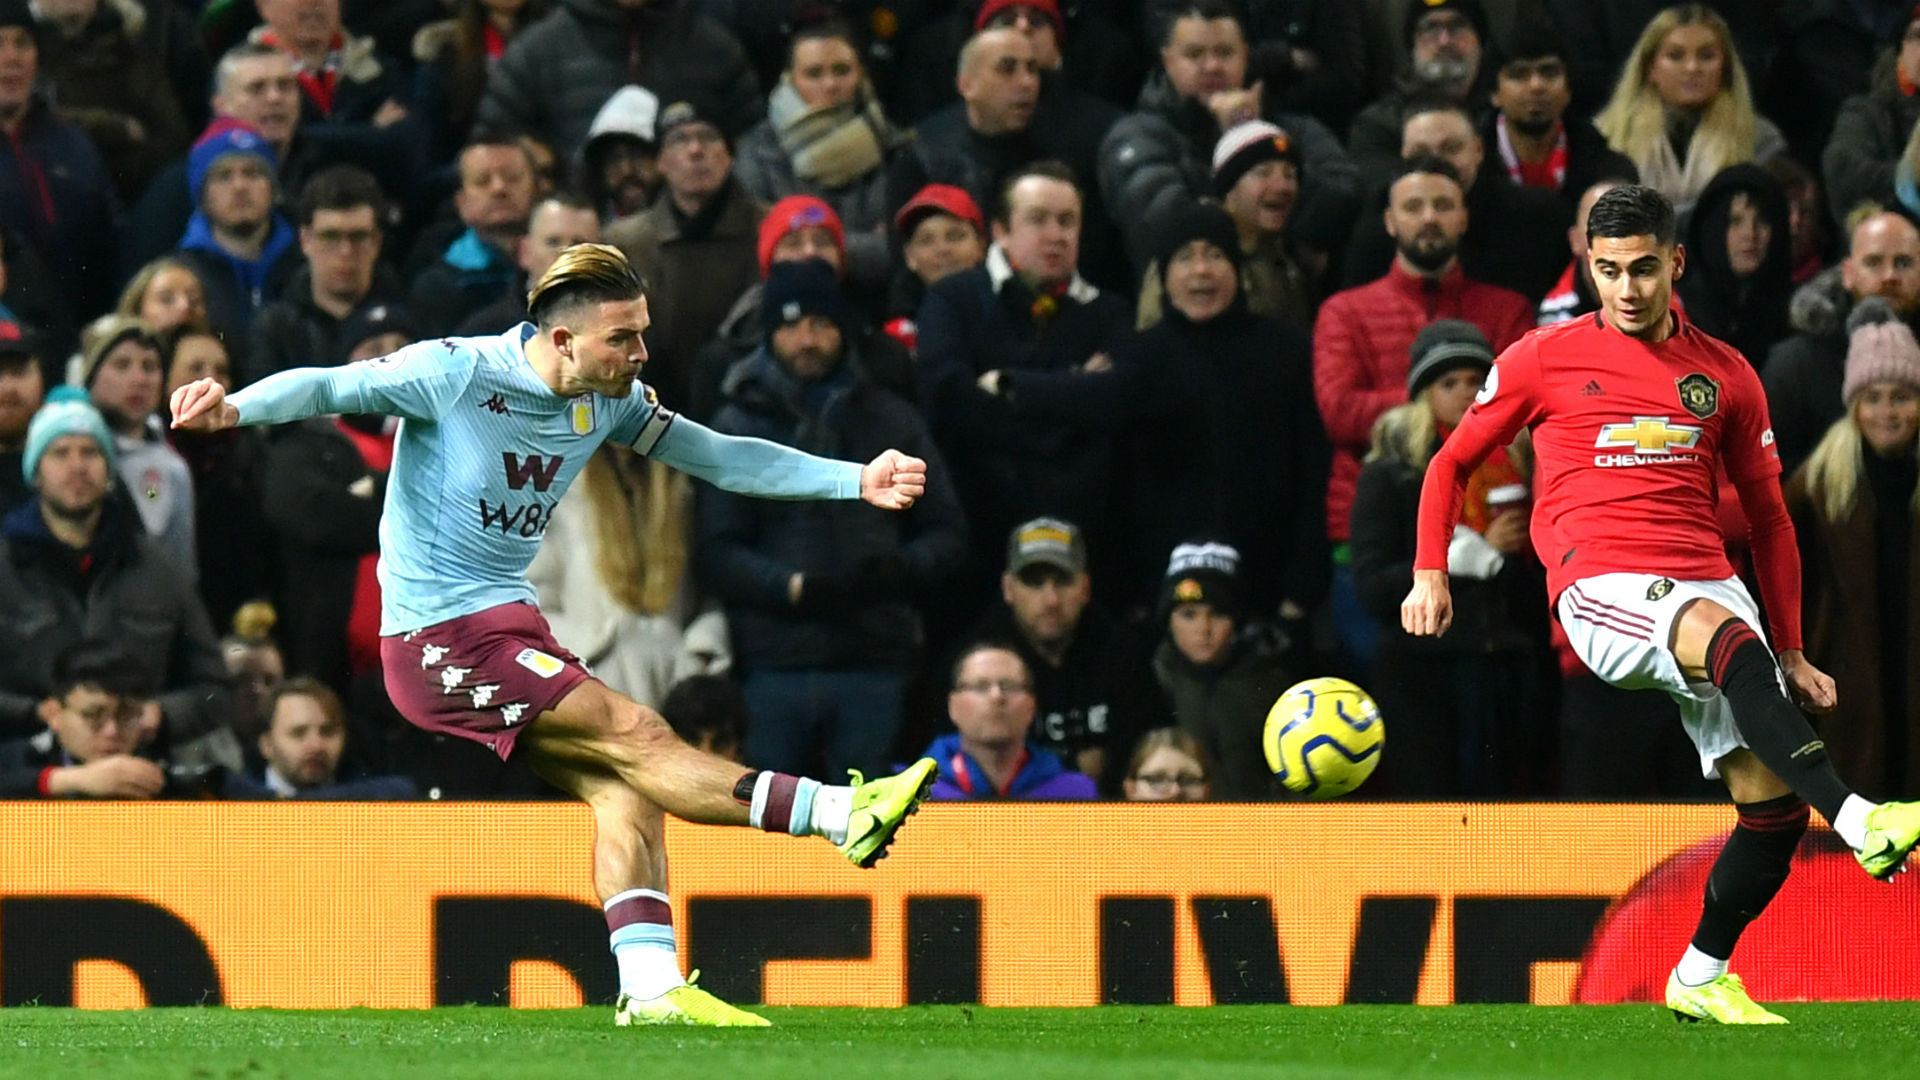 Showstopper Grealish proves his credentials as potential Man Utd protagonist